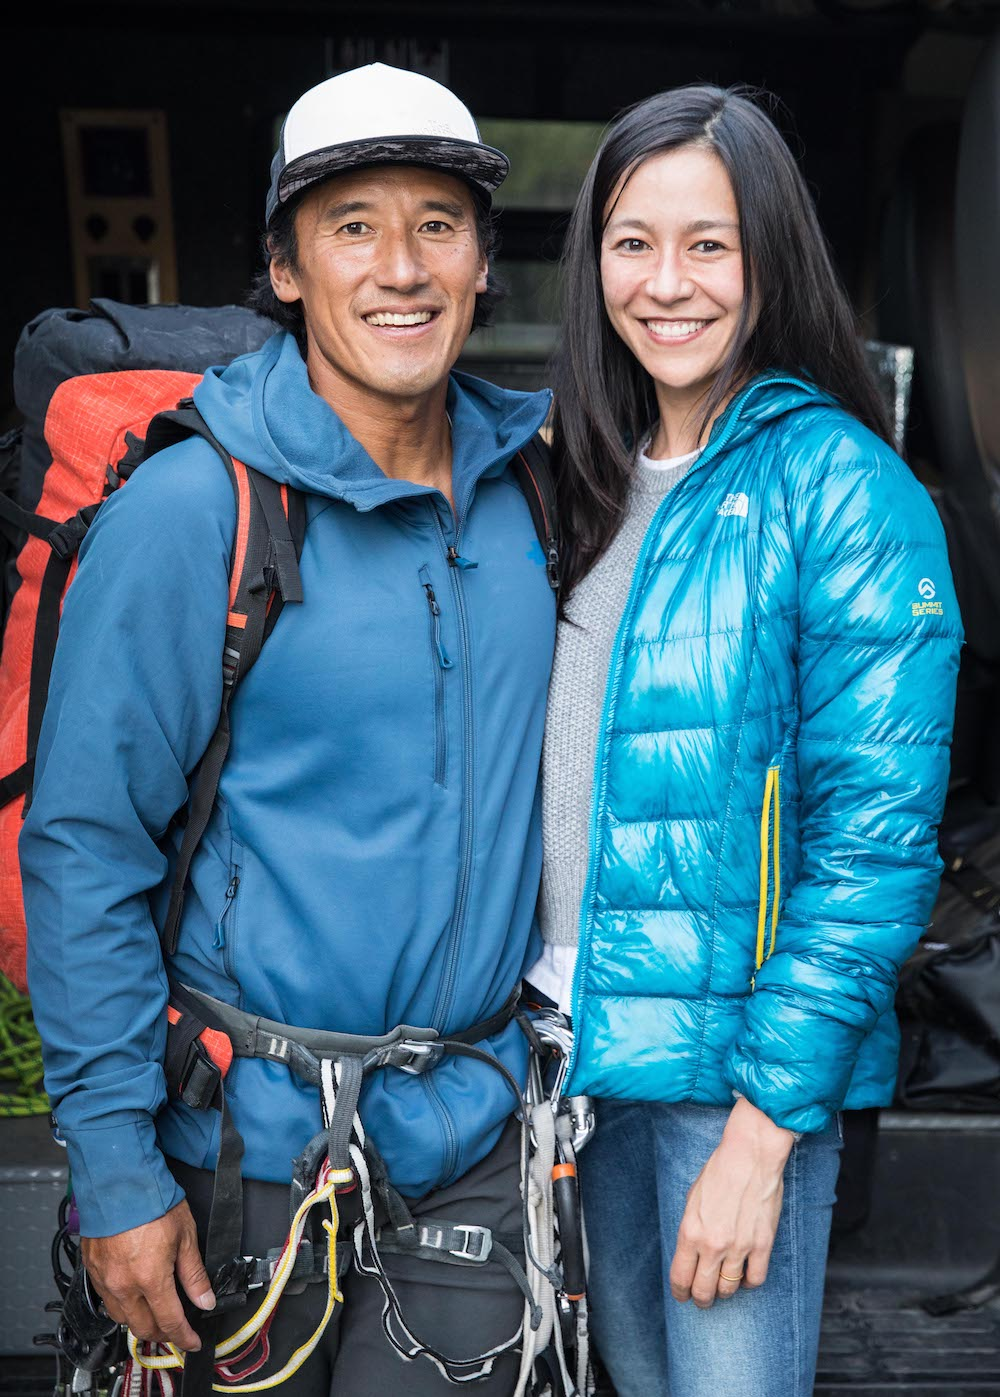 Jimmy Chin and his wife, E. Chai Vasarhelyi smile together